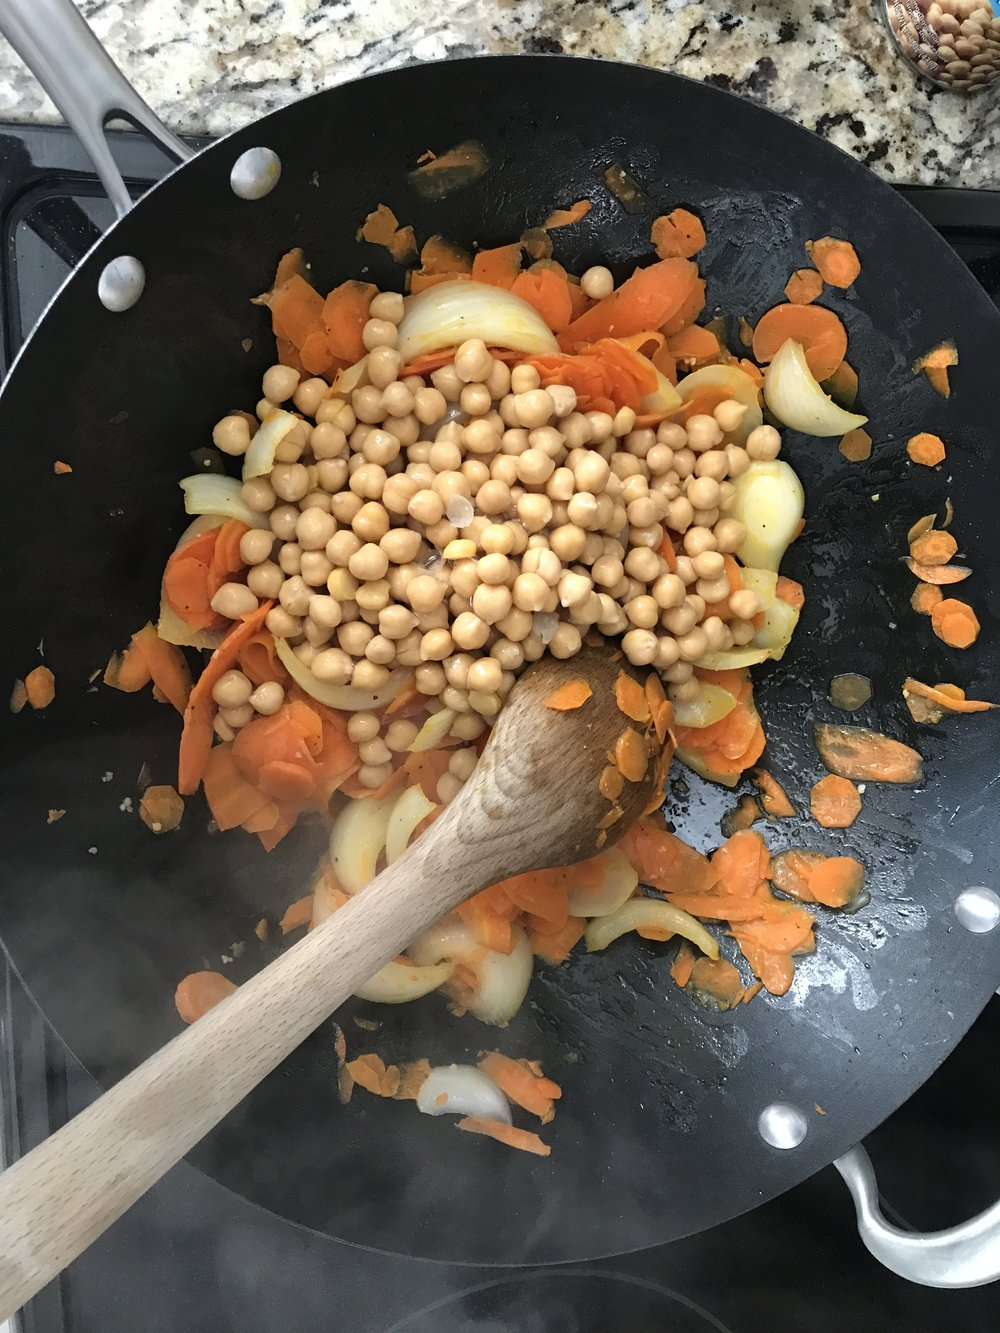 - Saute carrots and onion in large skillet or wok with olive oil until carrots and onion are soft. Add garlic and garbanzo beans and cook another 1-2 minutes. Add parsley, vinegar, salt and pepper. Mix well and serve hot.